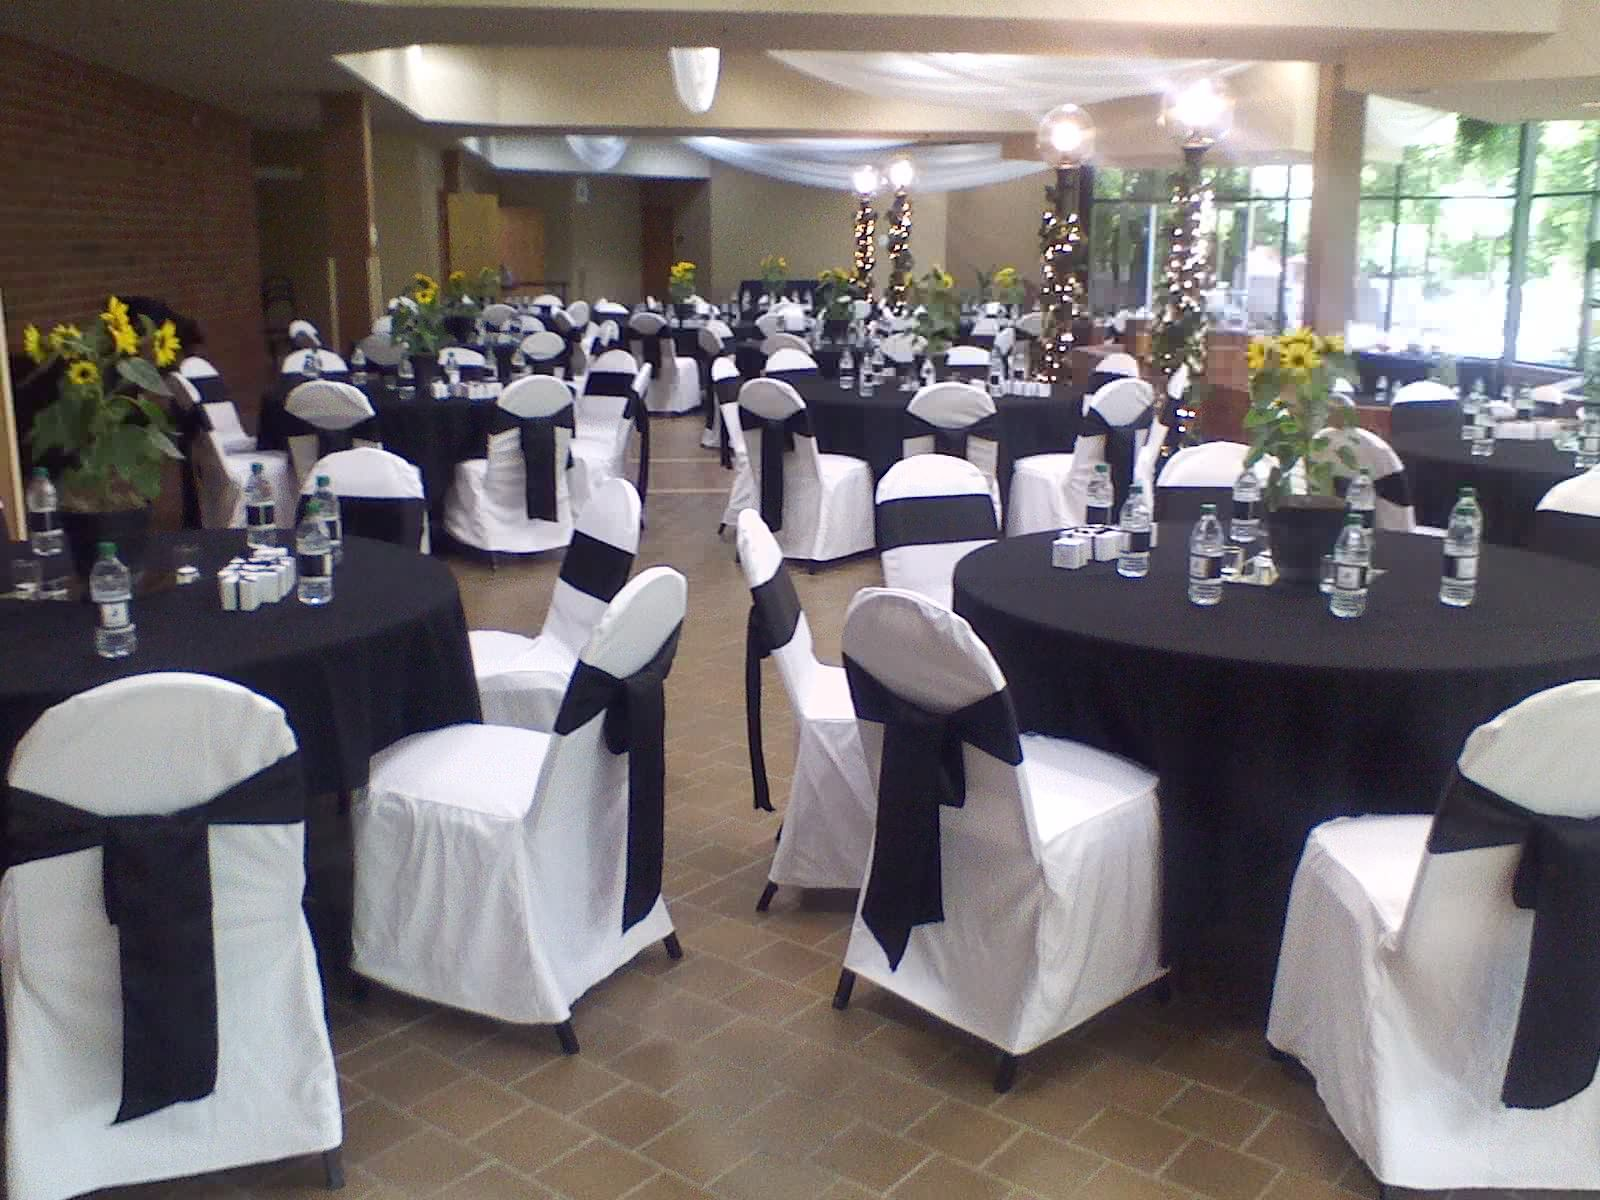 Folding chair covers with sash - Black Table Linens And White Chair Covers With Black Satin Sahses Traditional Bow At